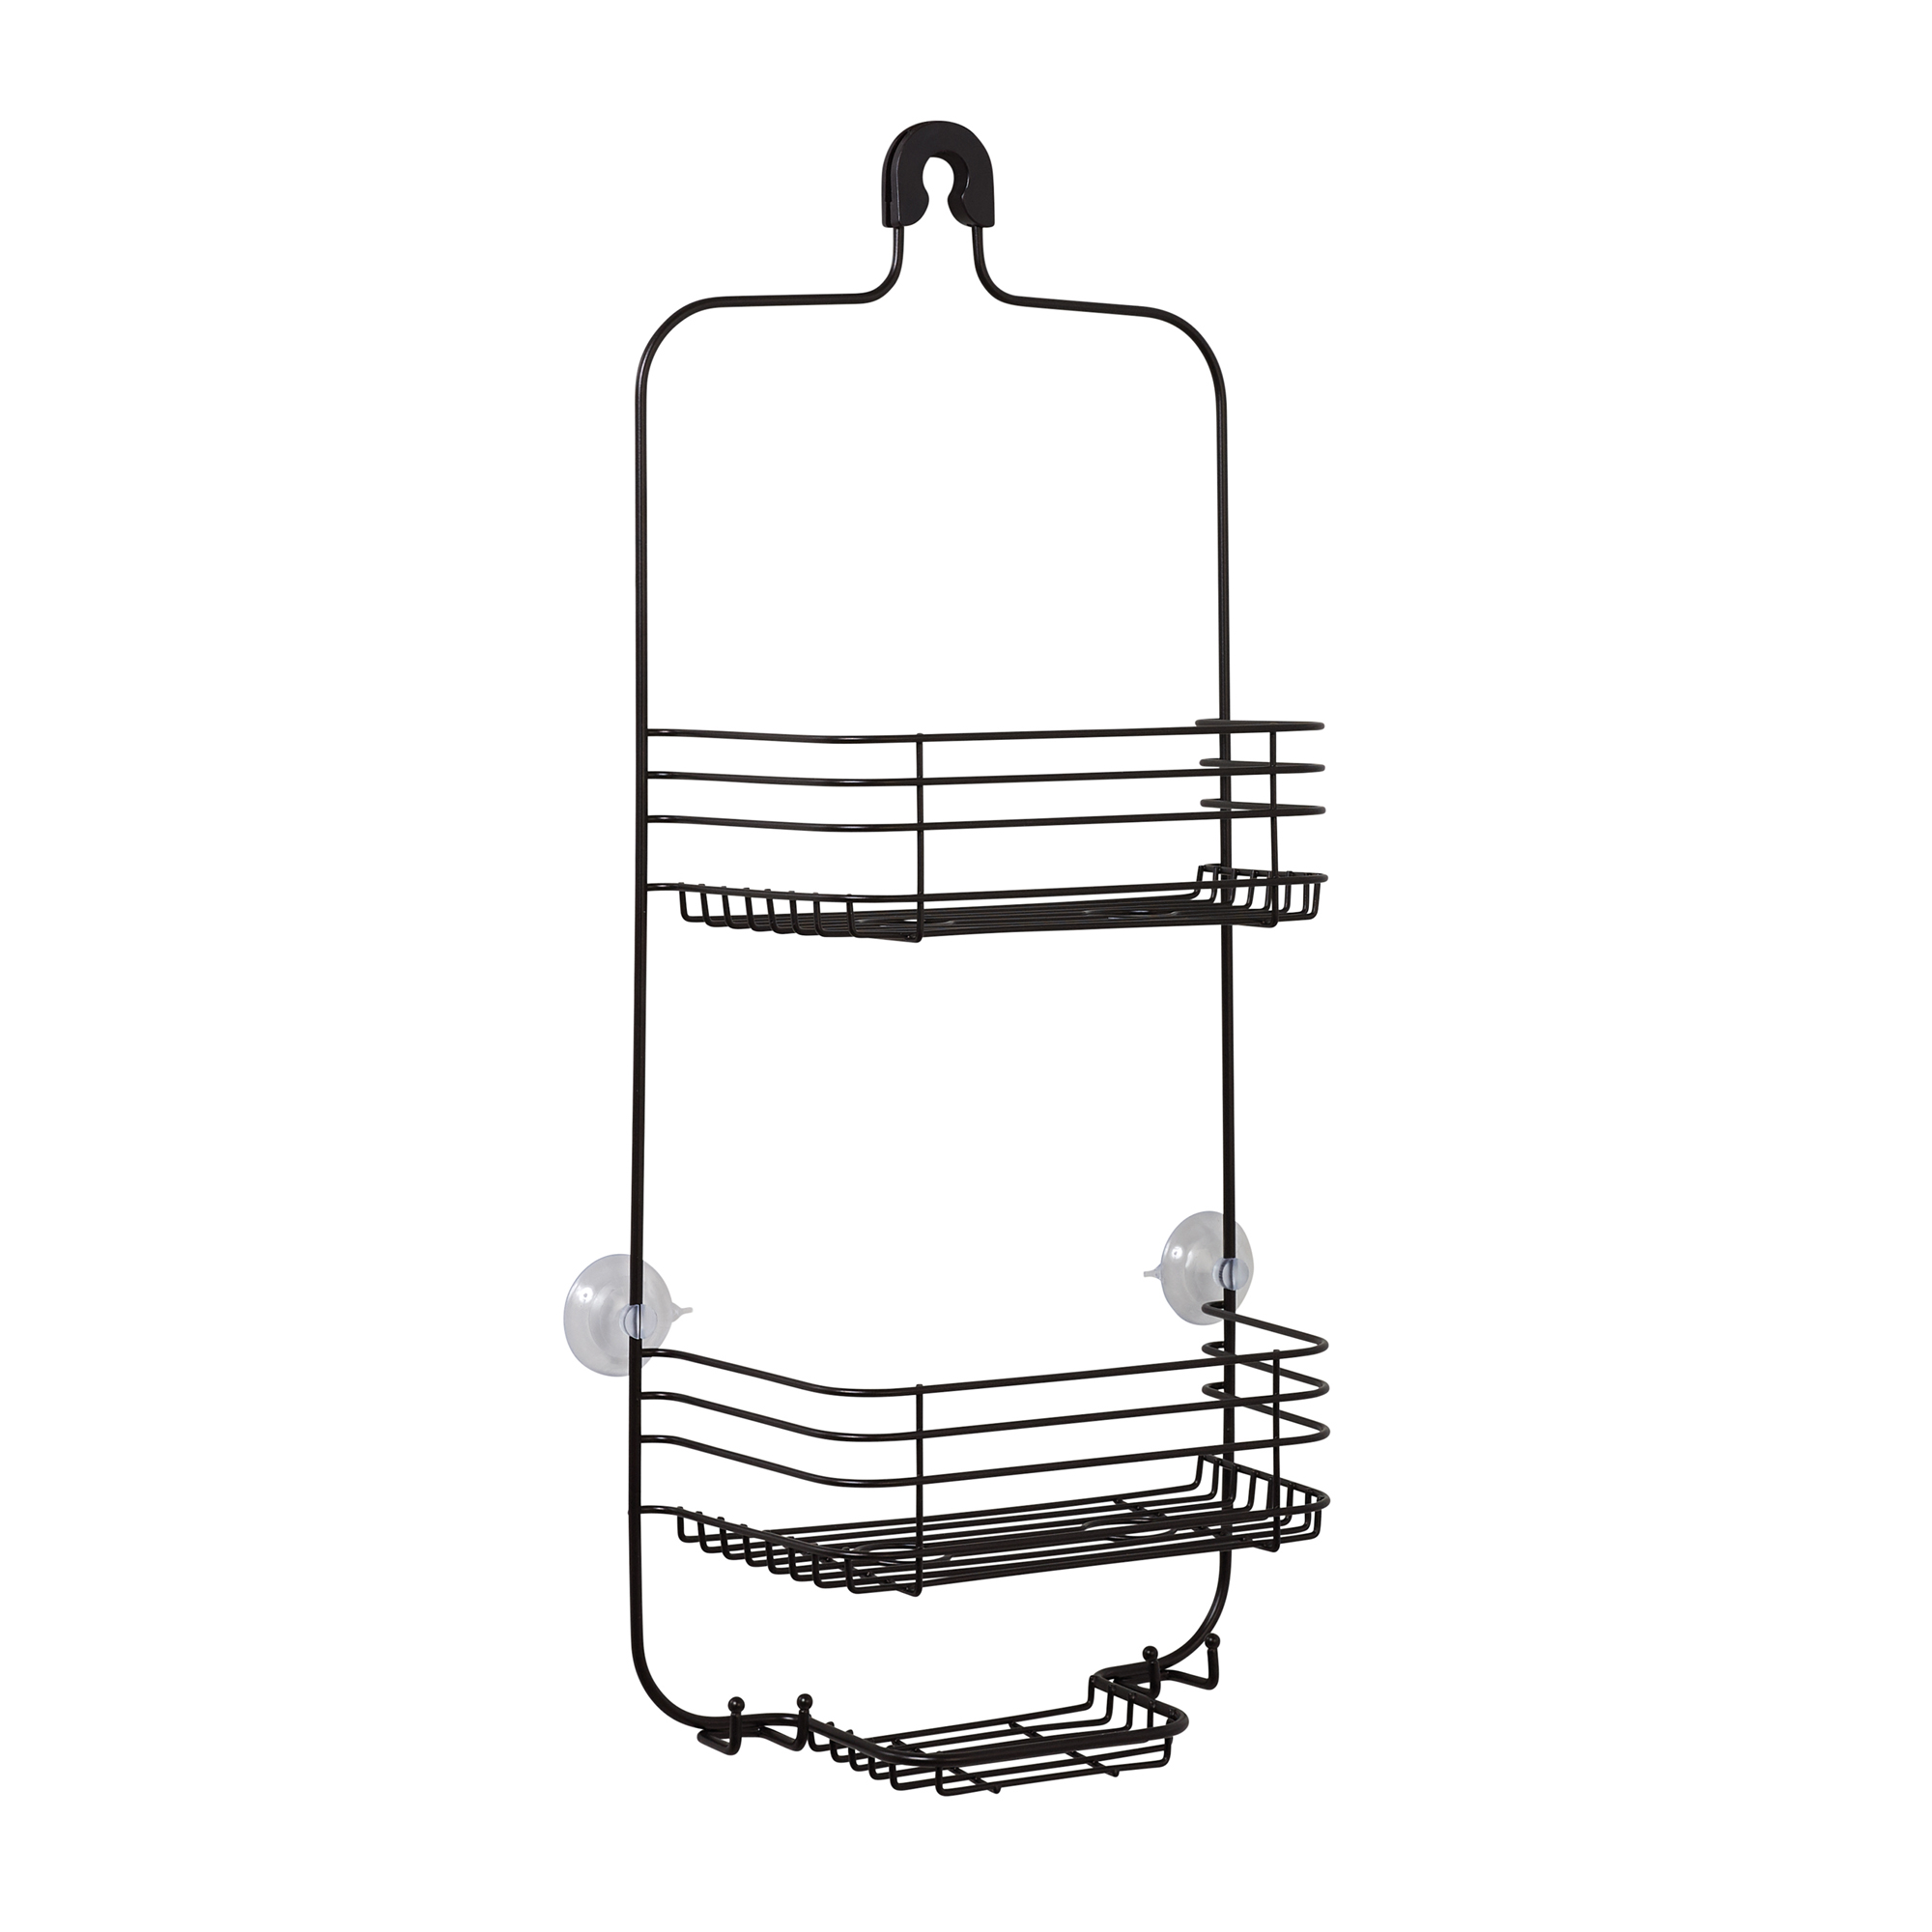 Mainstays Two Shelf Shower Caddy with Hold-Tight Grip, Oil-Rubbed Bronze